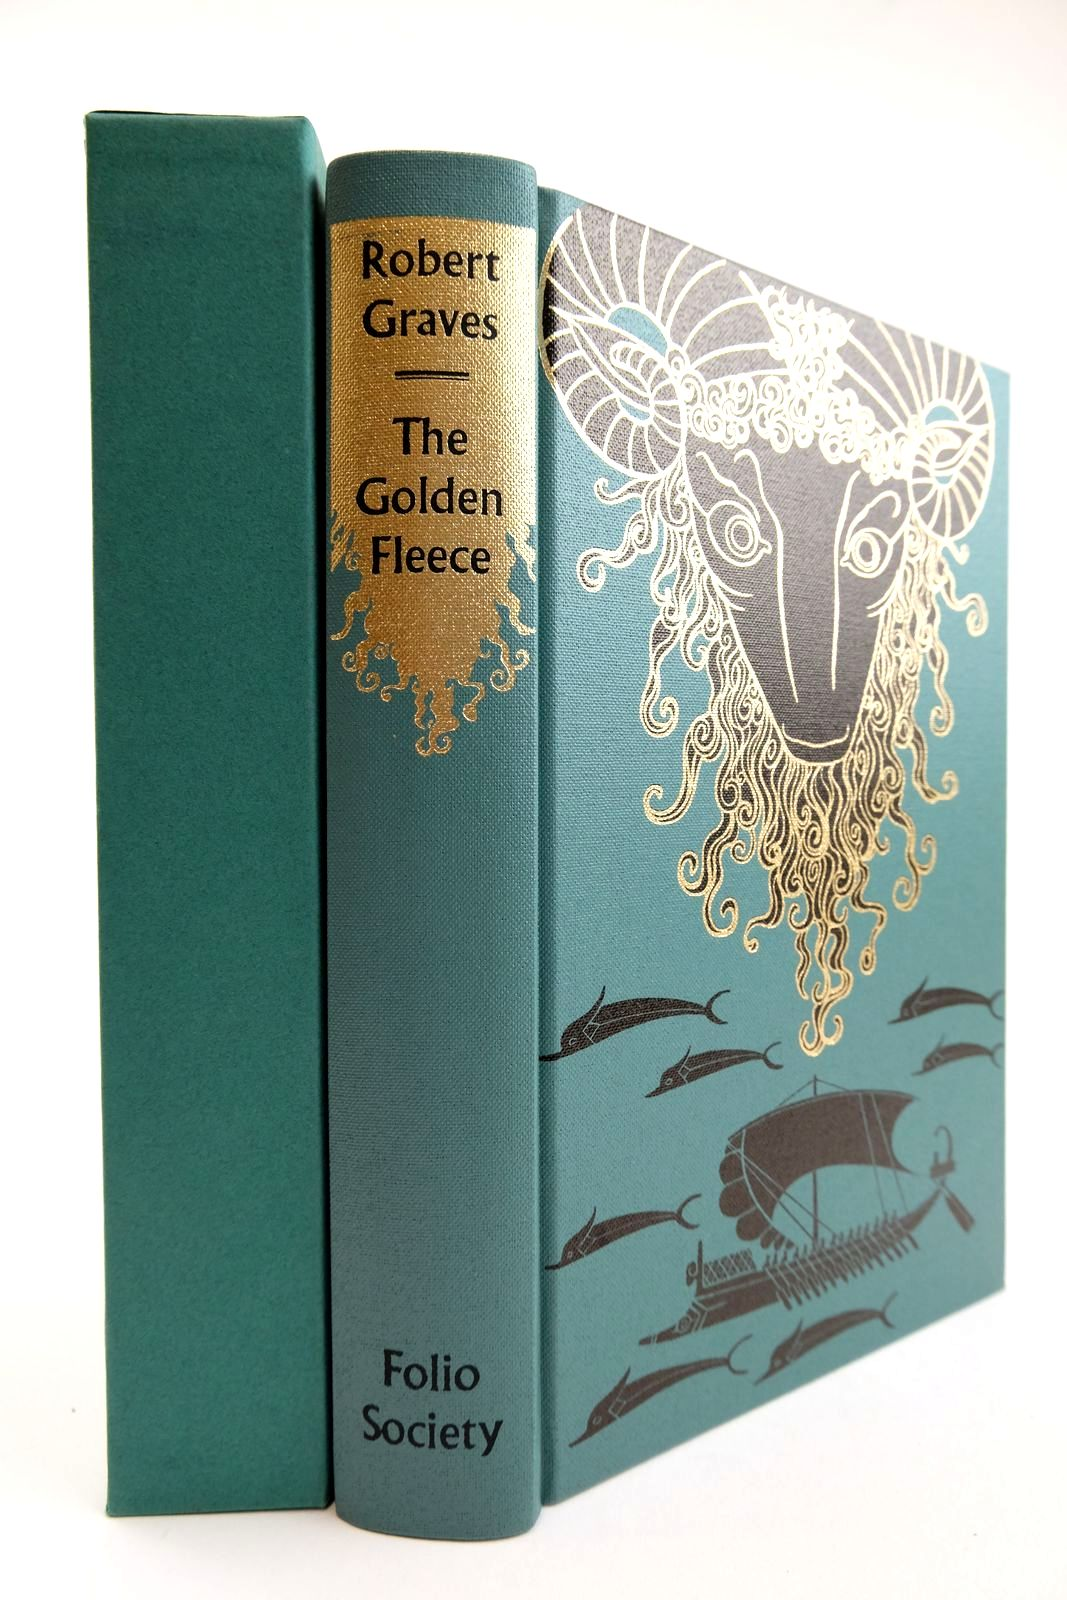 Photo of THE GOLDEN FLEECE written by Graves, Robert Norfolk, Lawrence illustrated by Baker, Grahame published by Folio Society (STOCK CODE: 2132392)  for sale by Stella & Rose's Books